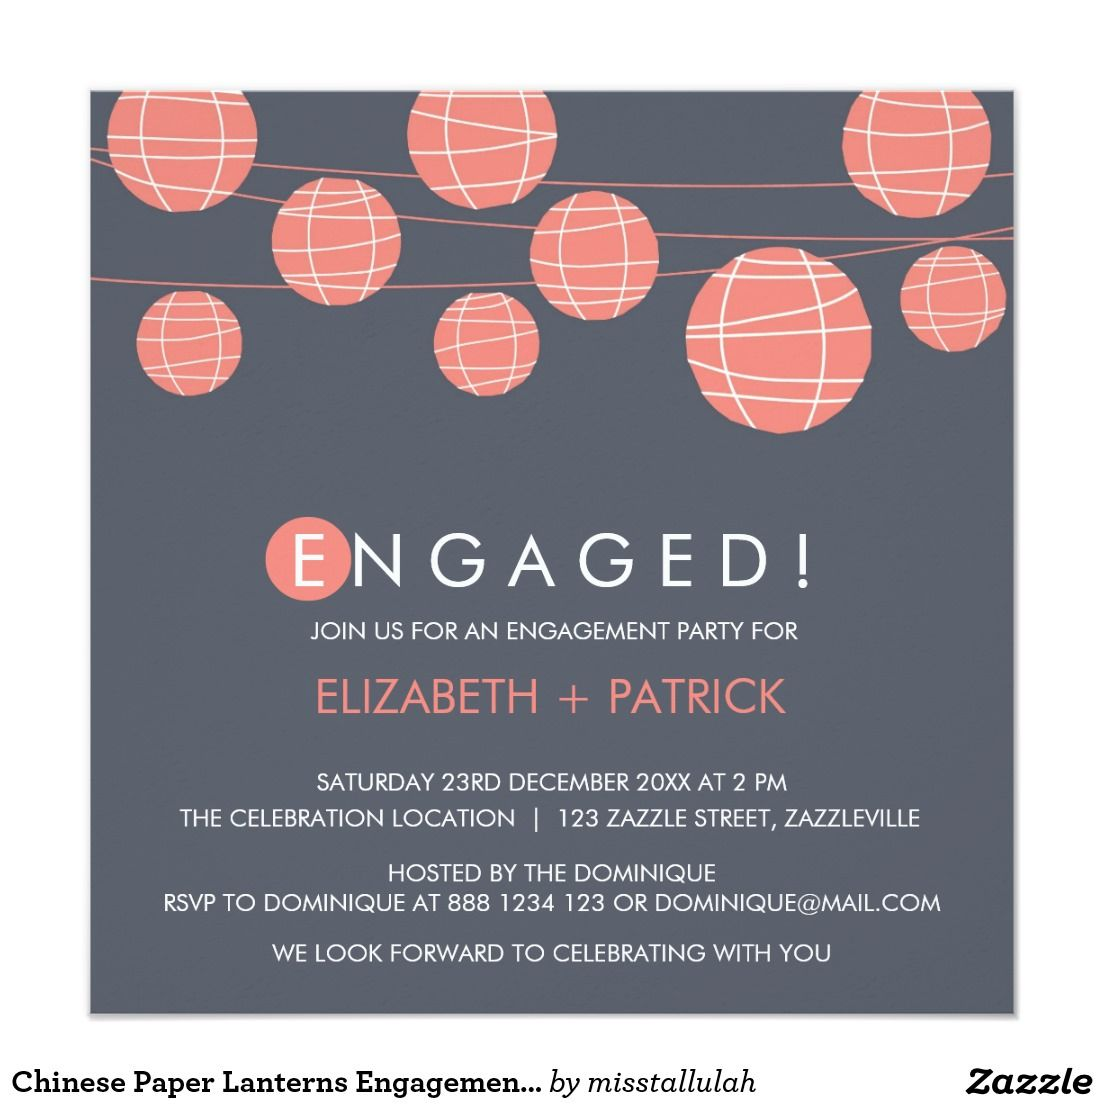 Chinese Paper Lanterns Engagement Party Invitation | Engagement ...